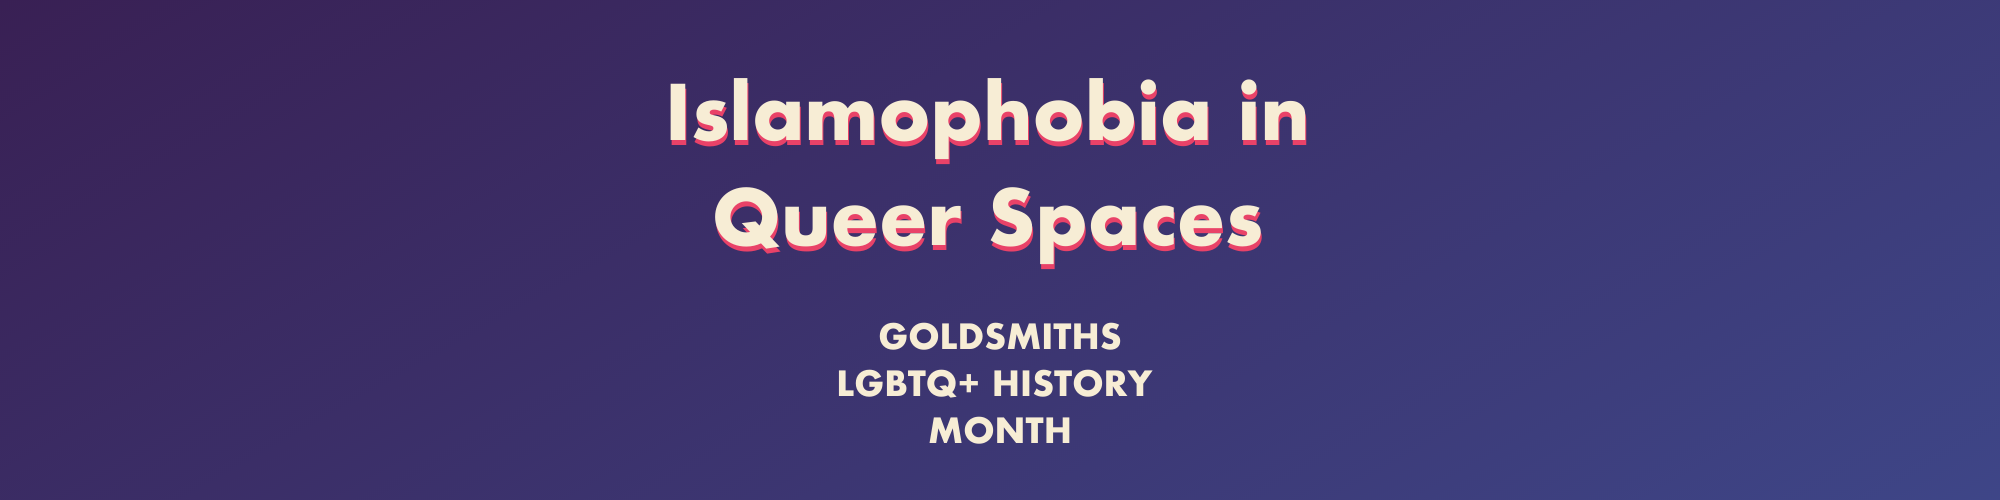 Islamophobia in Queer Spaces